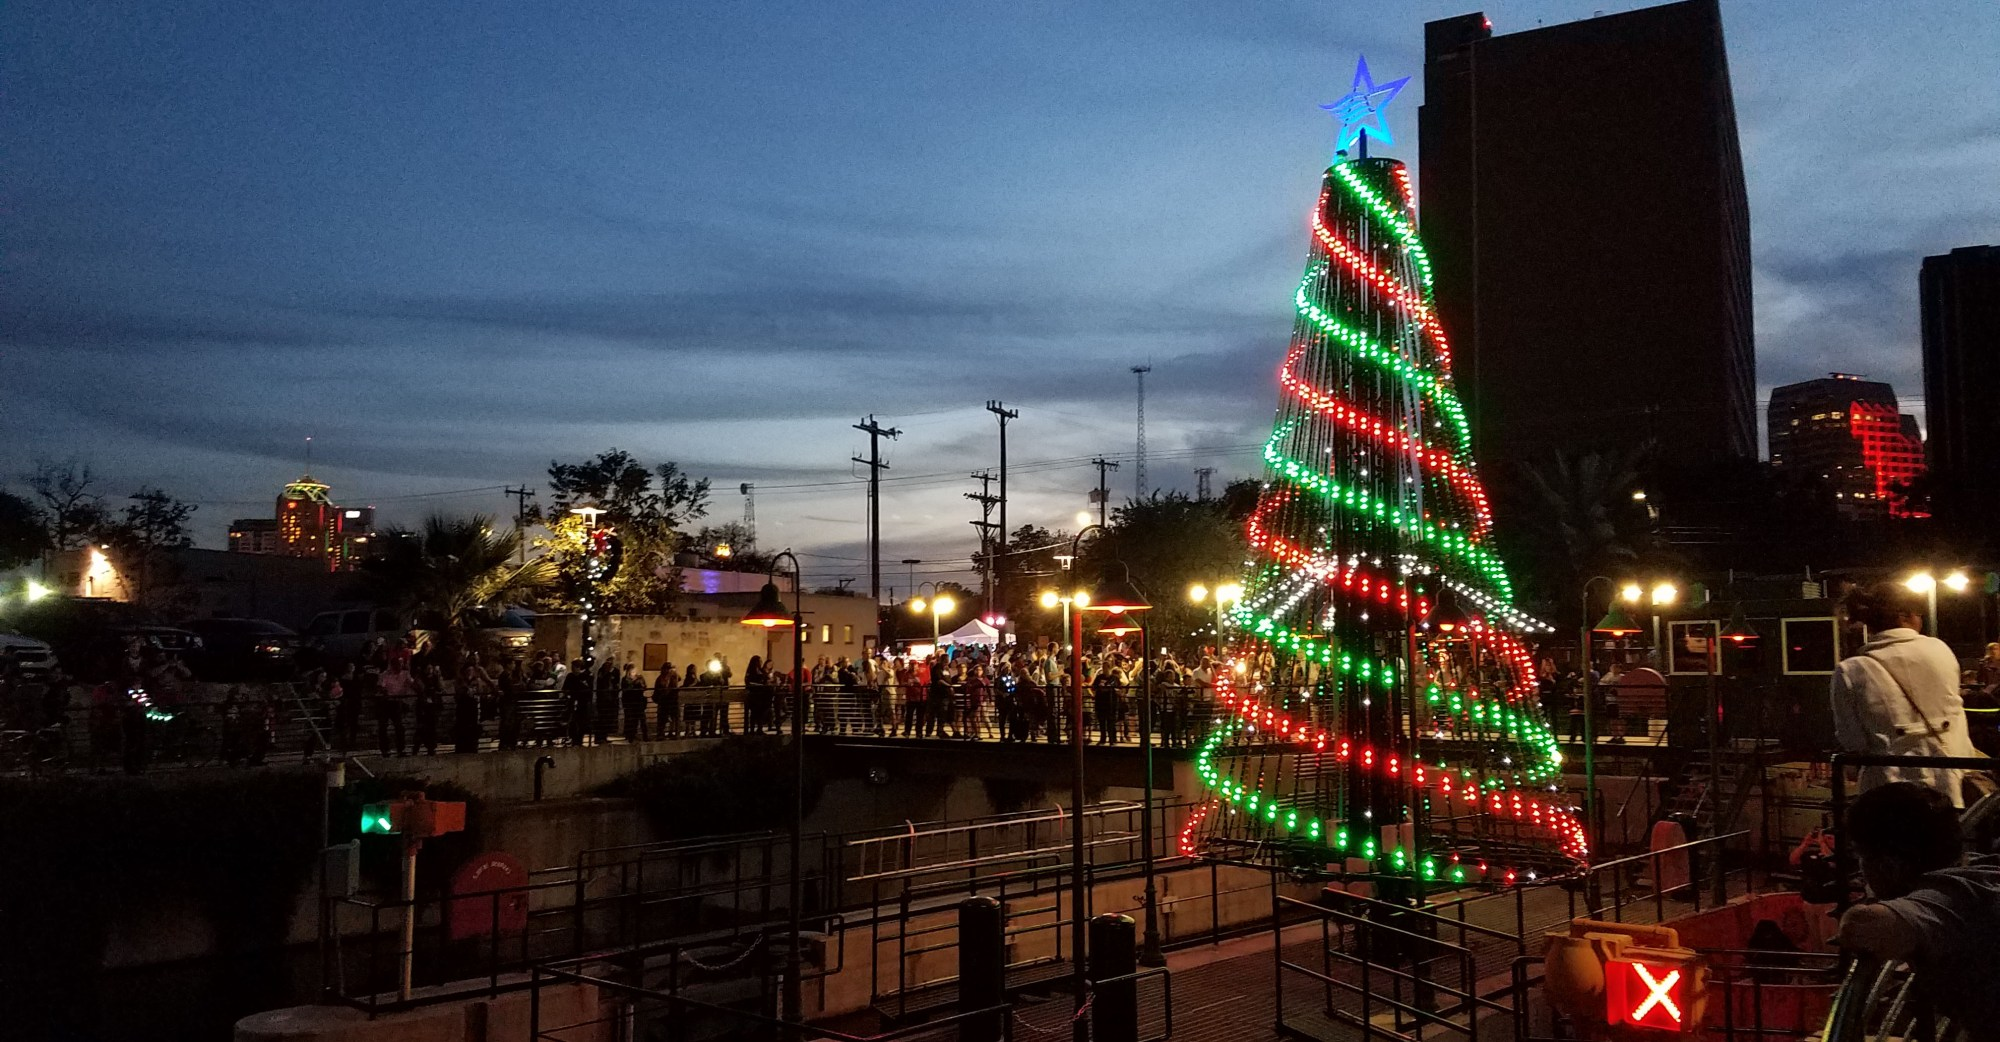 hight resolution of living light shows rgb pixel and color changing led christmas light show products and services for commercial christmas displays and music synchronized